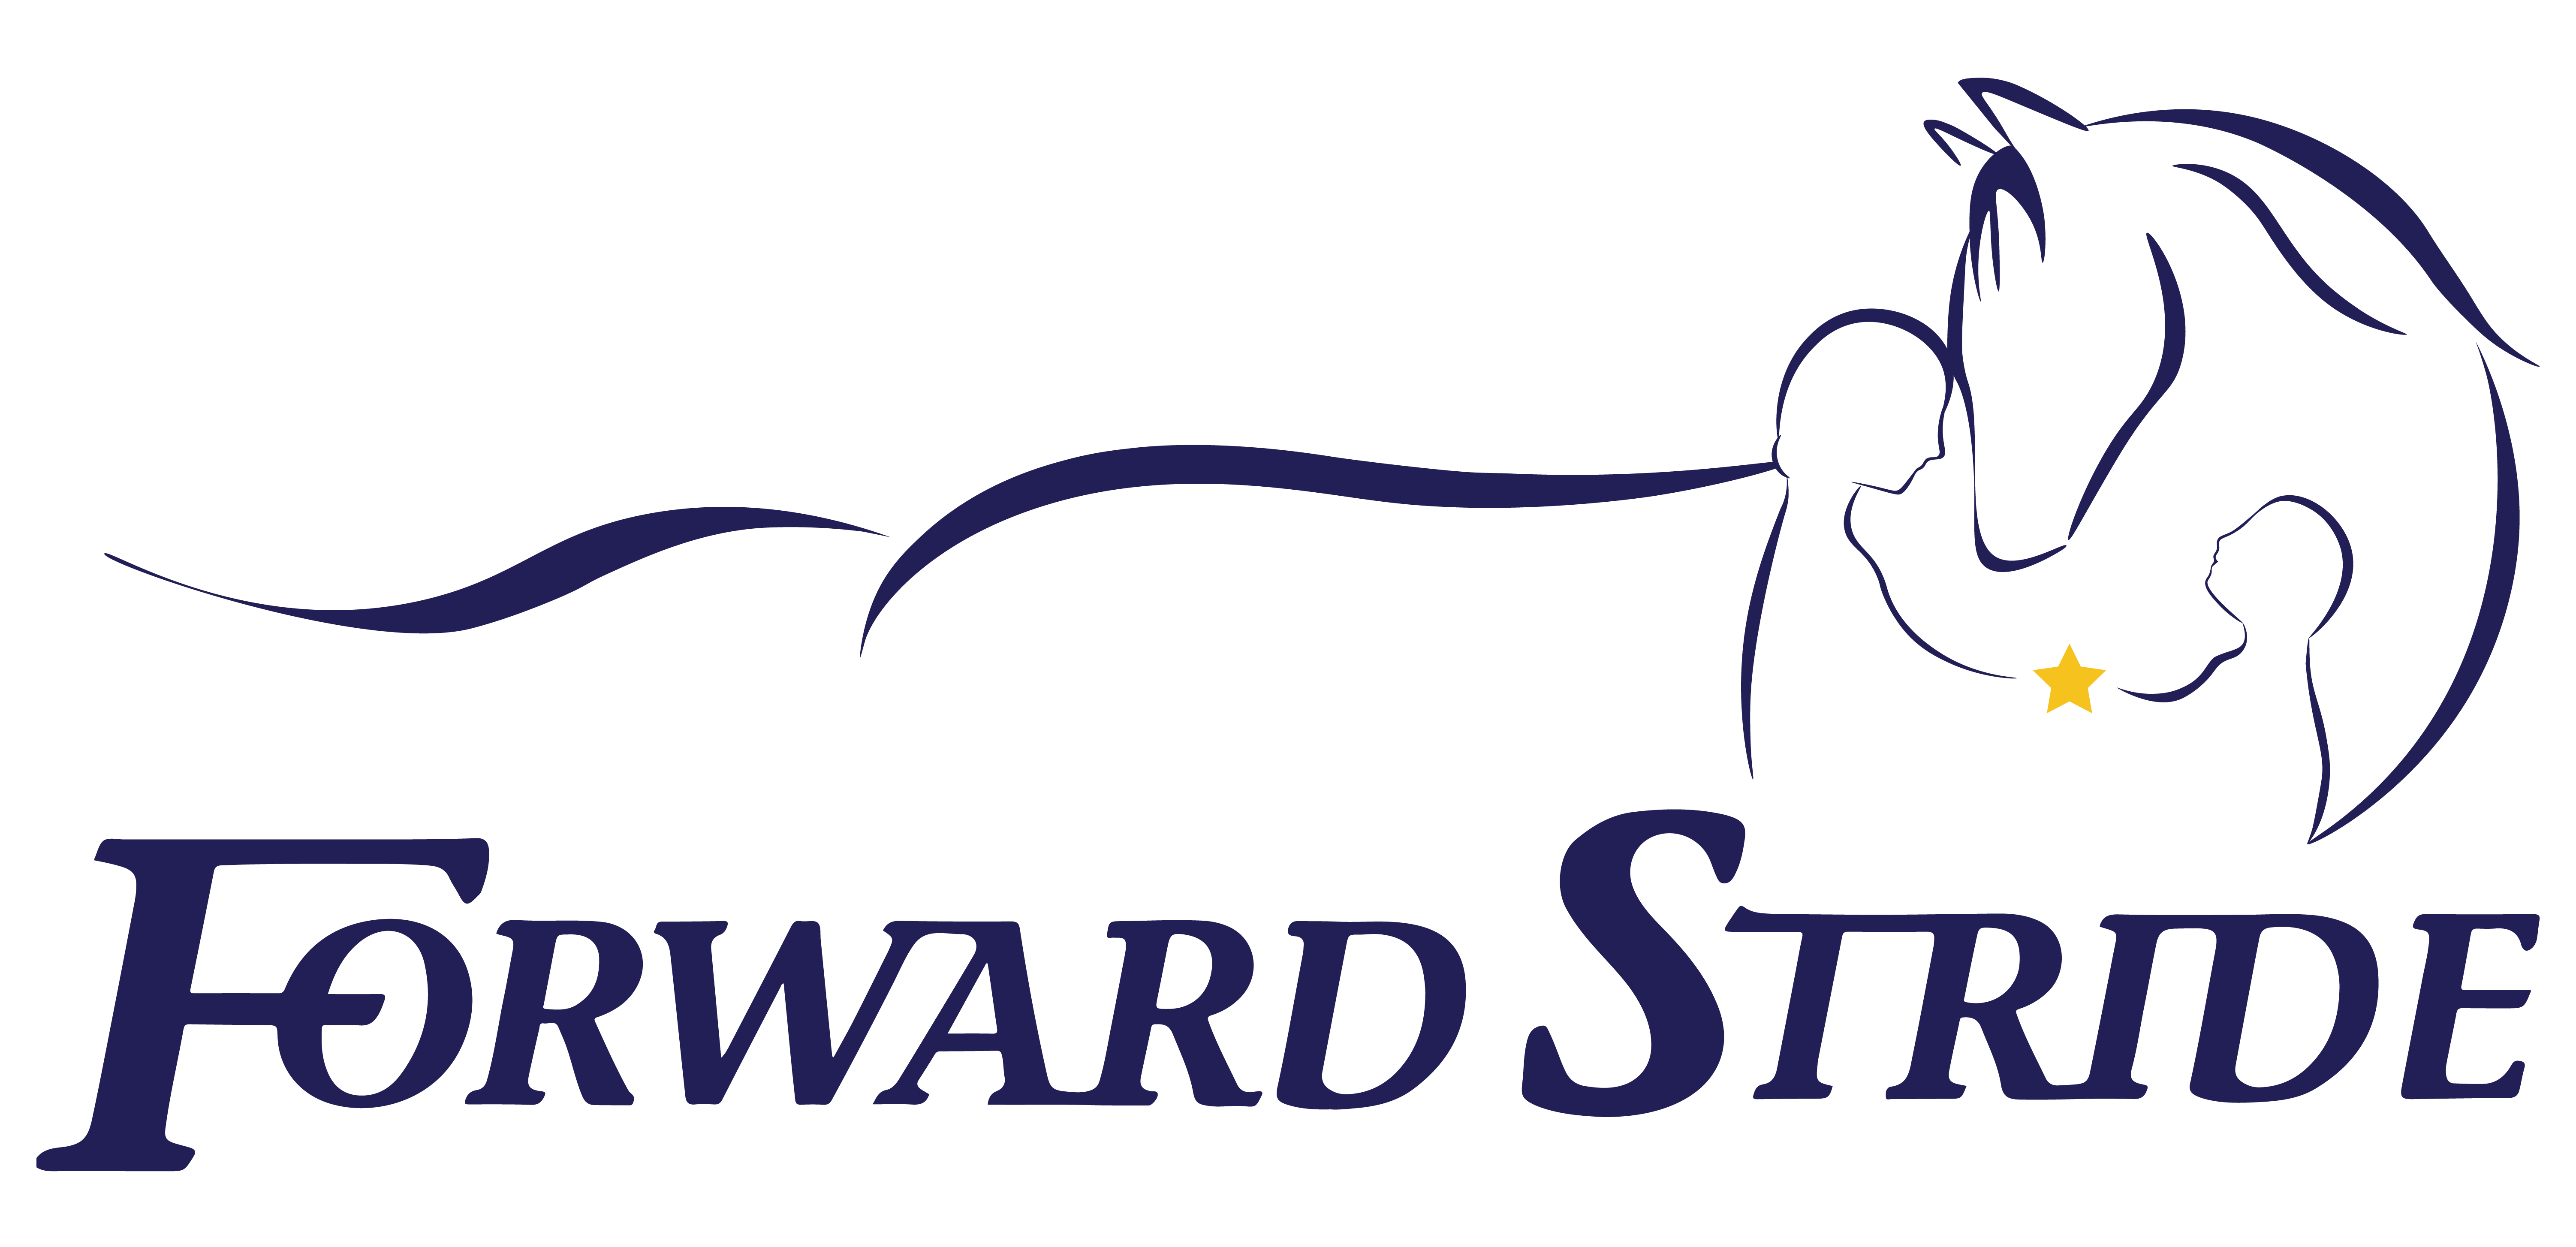 Clipart walking stride. Forward equine assisted activities